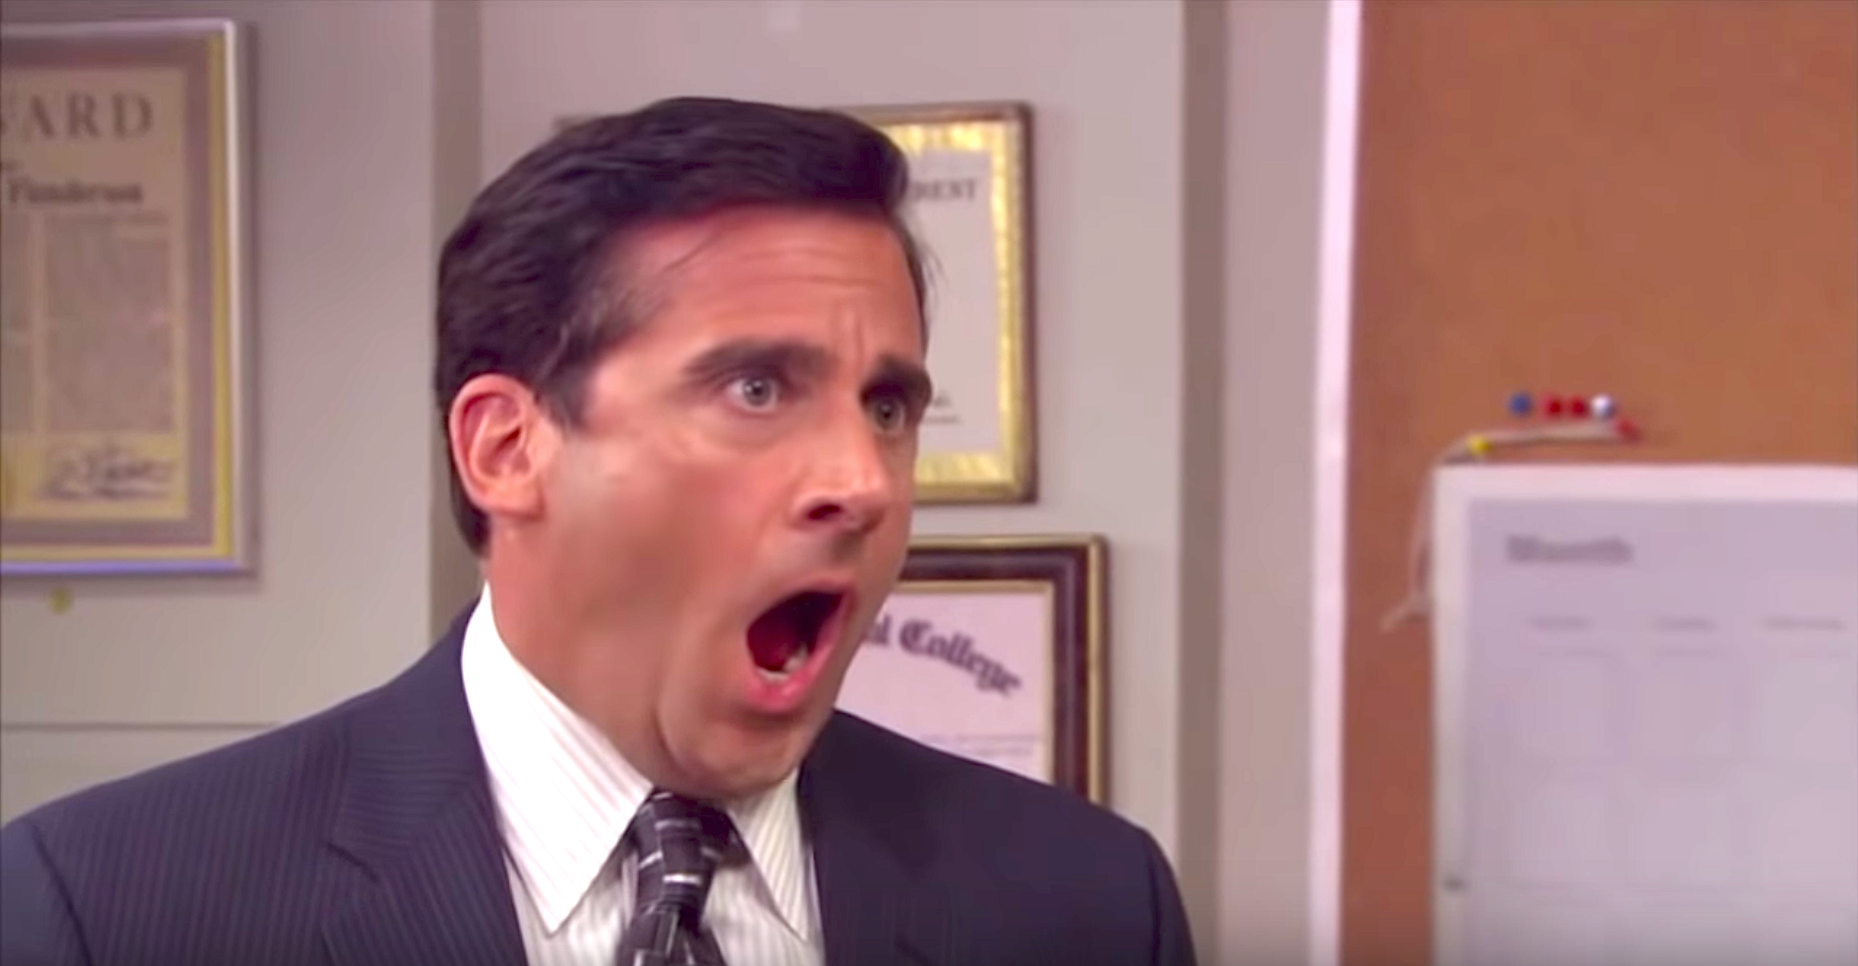 The Office Might Be Leaving Netflix Soon, So Start Panicking